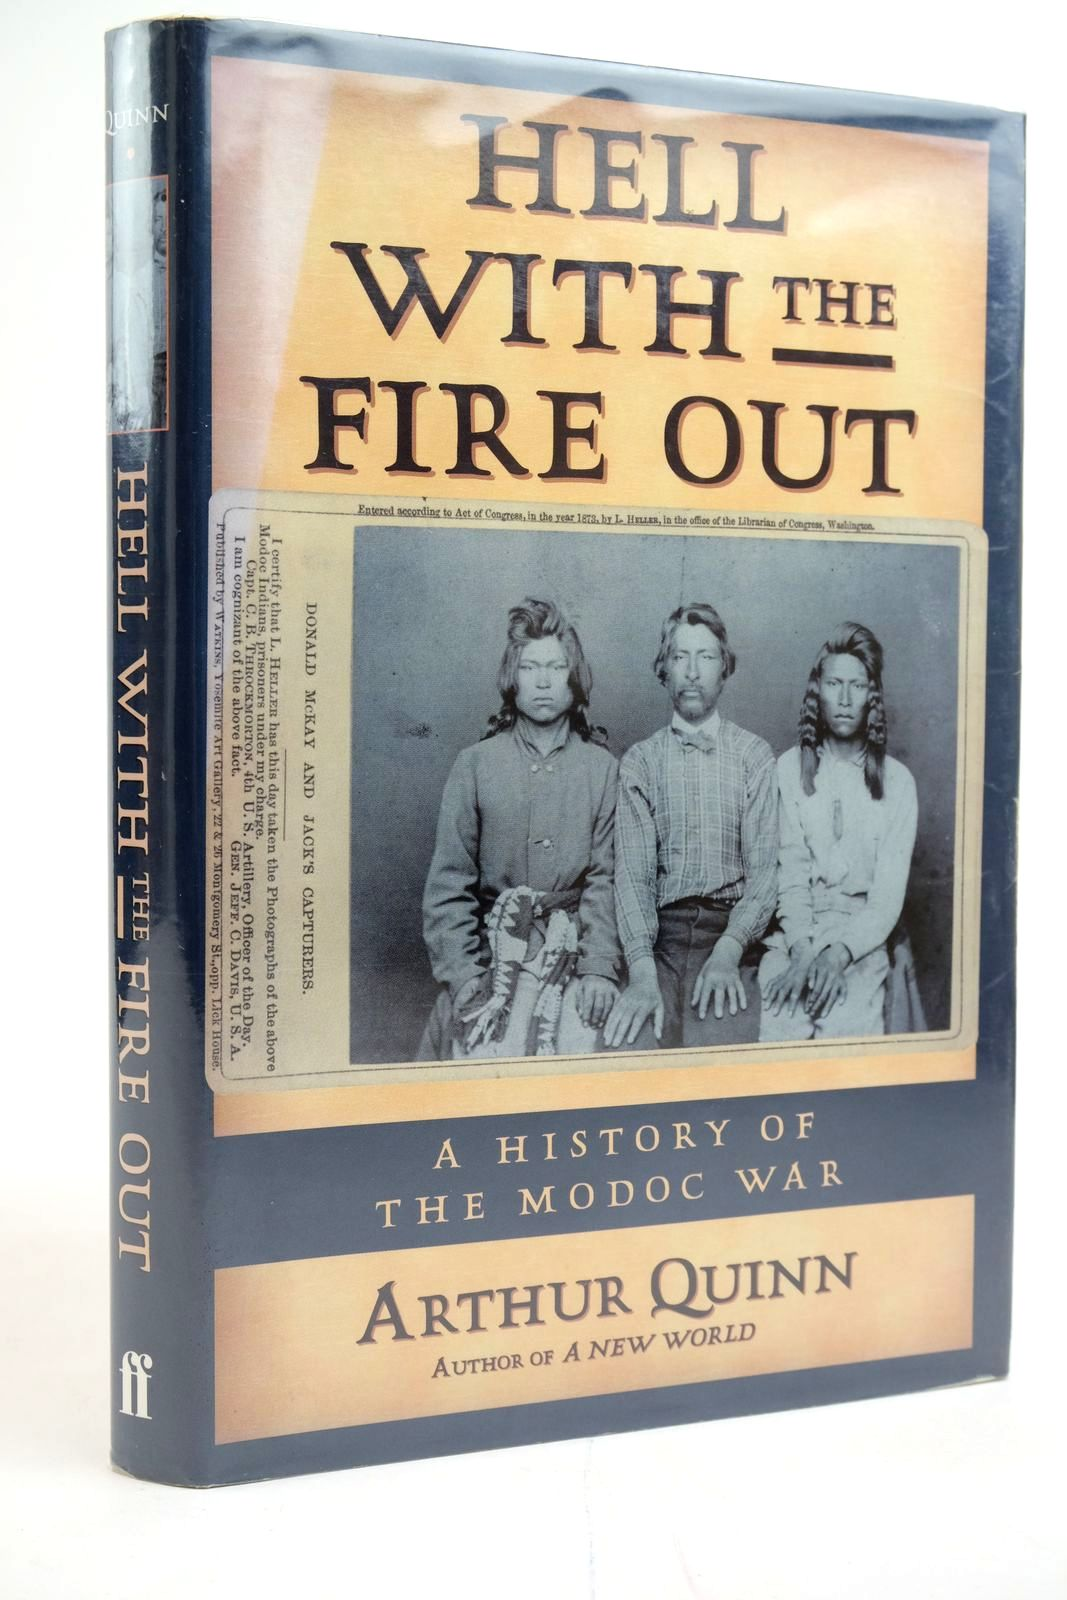 Photo of HELL WITH THE FIRE OUT: A HISTORY OF THE MODOC WAR- Stock Number: 2135257